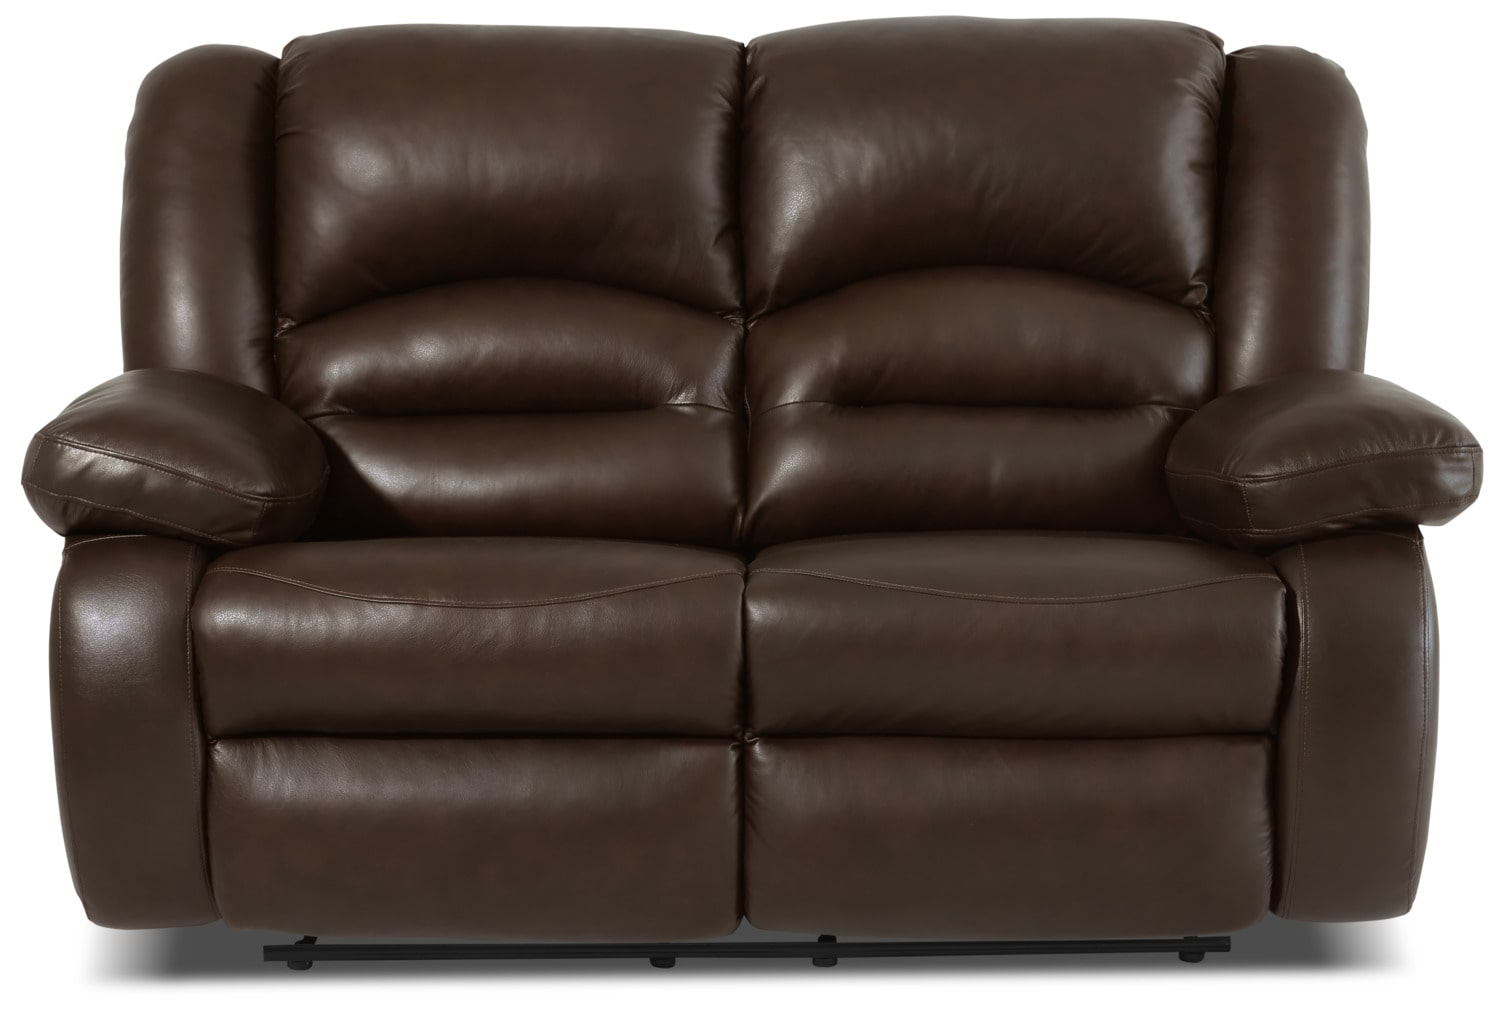 Reclining Loveseats The Brick